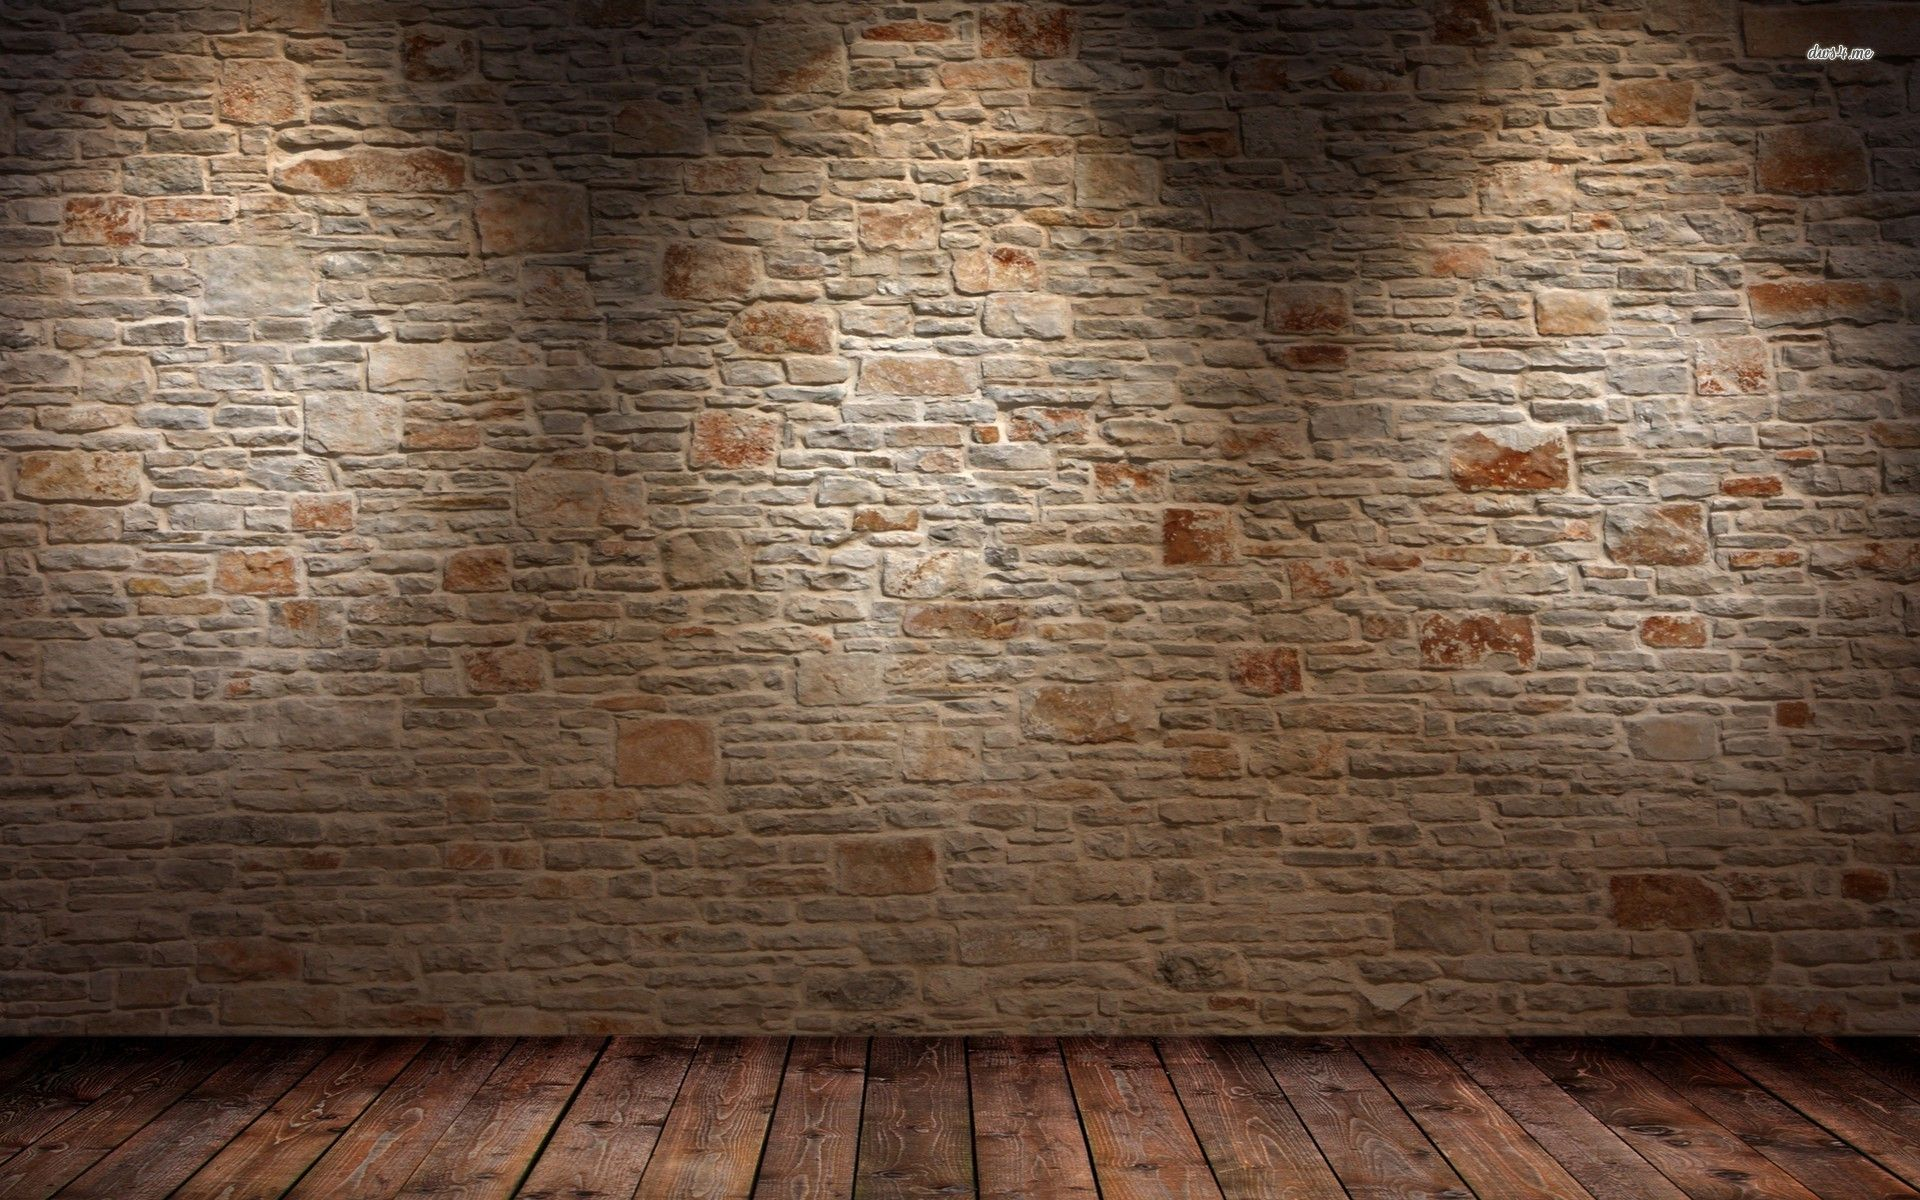 Brick Wall And Wood Floor Abstract Wallpaper Brick Wall Background Background For Photography Vinyl Backdrops